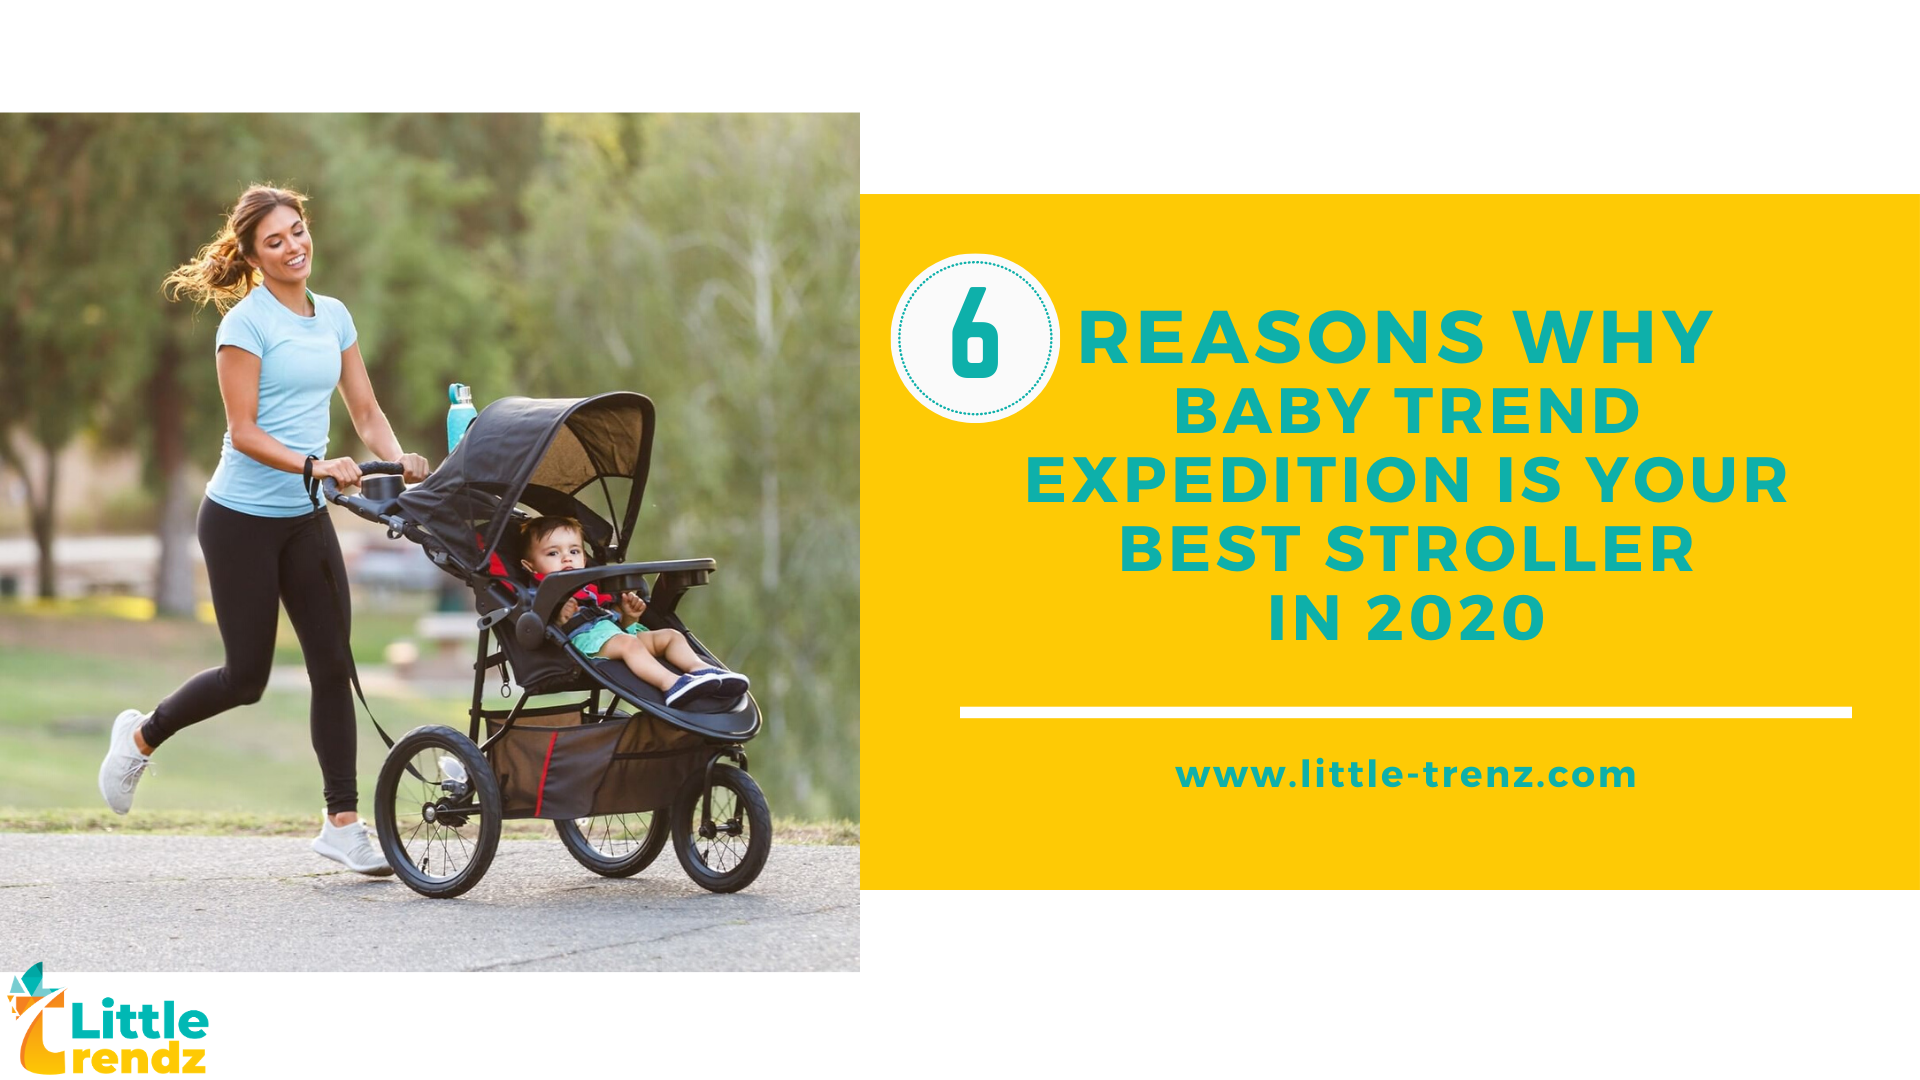 6 Reasons Why Baby Trend Expedition is your Best Stroller in 2020